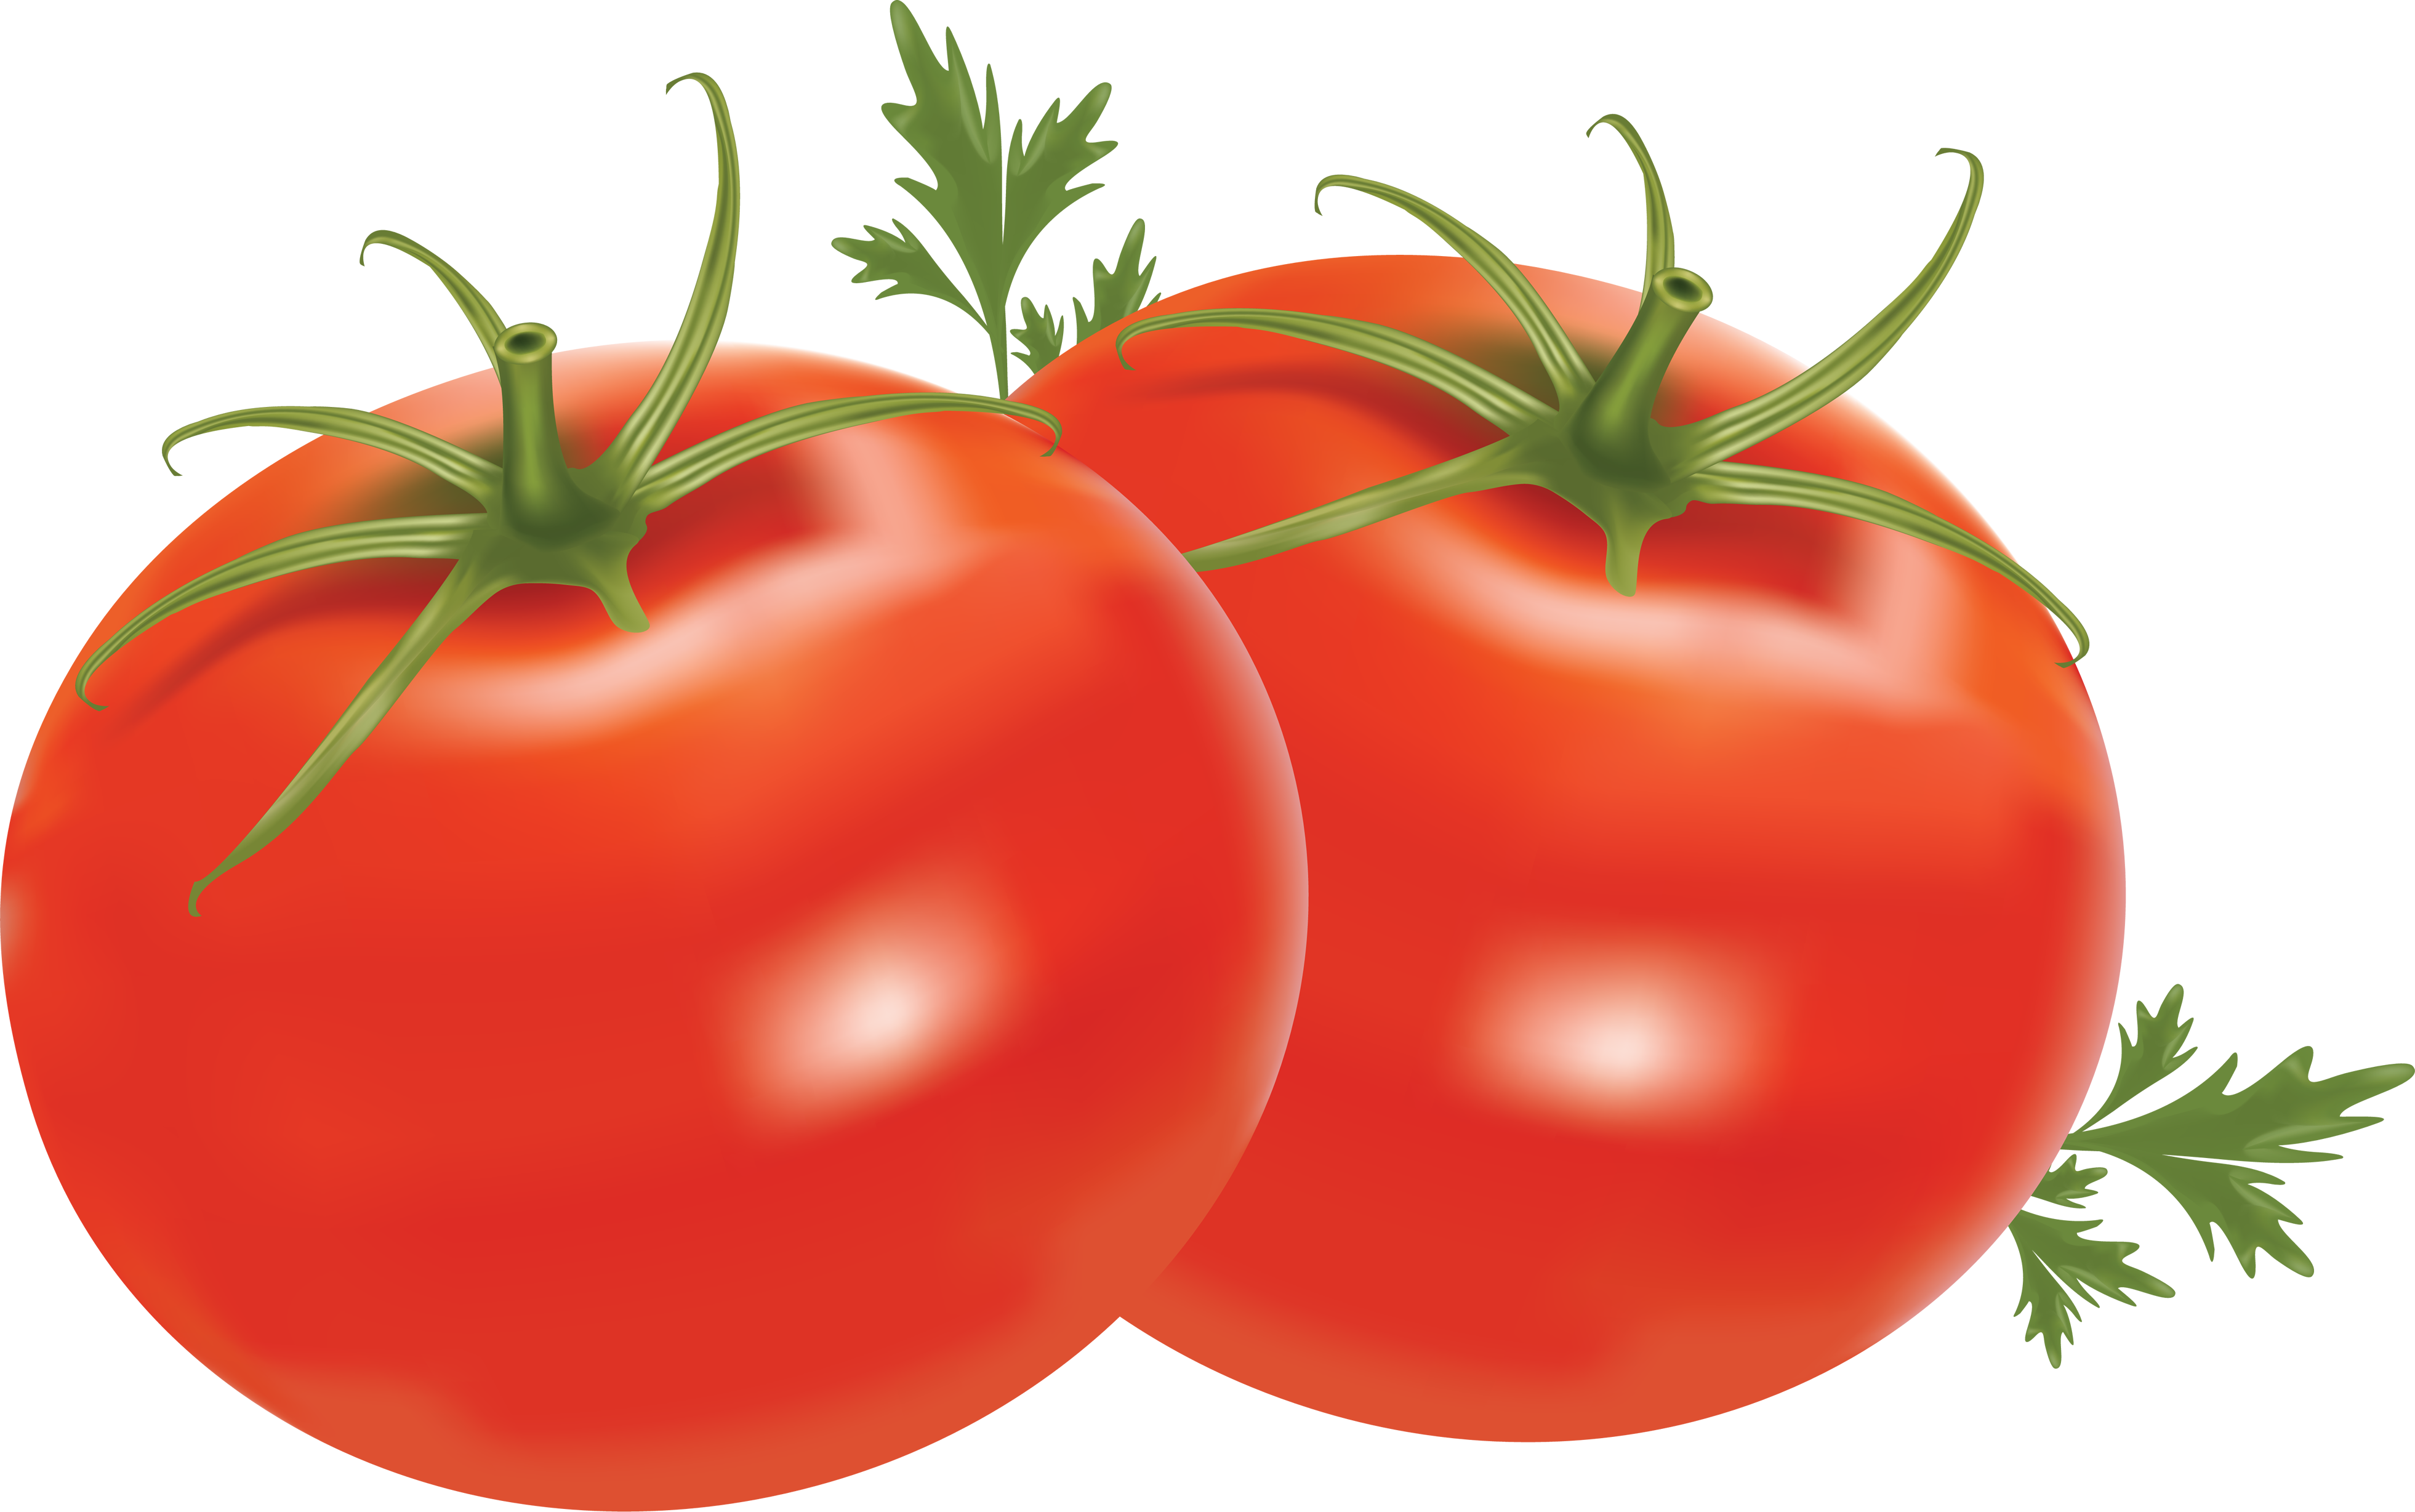 Red Tomatoes PNG Image.